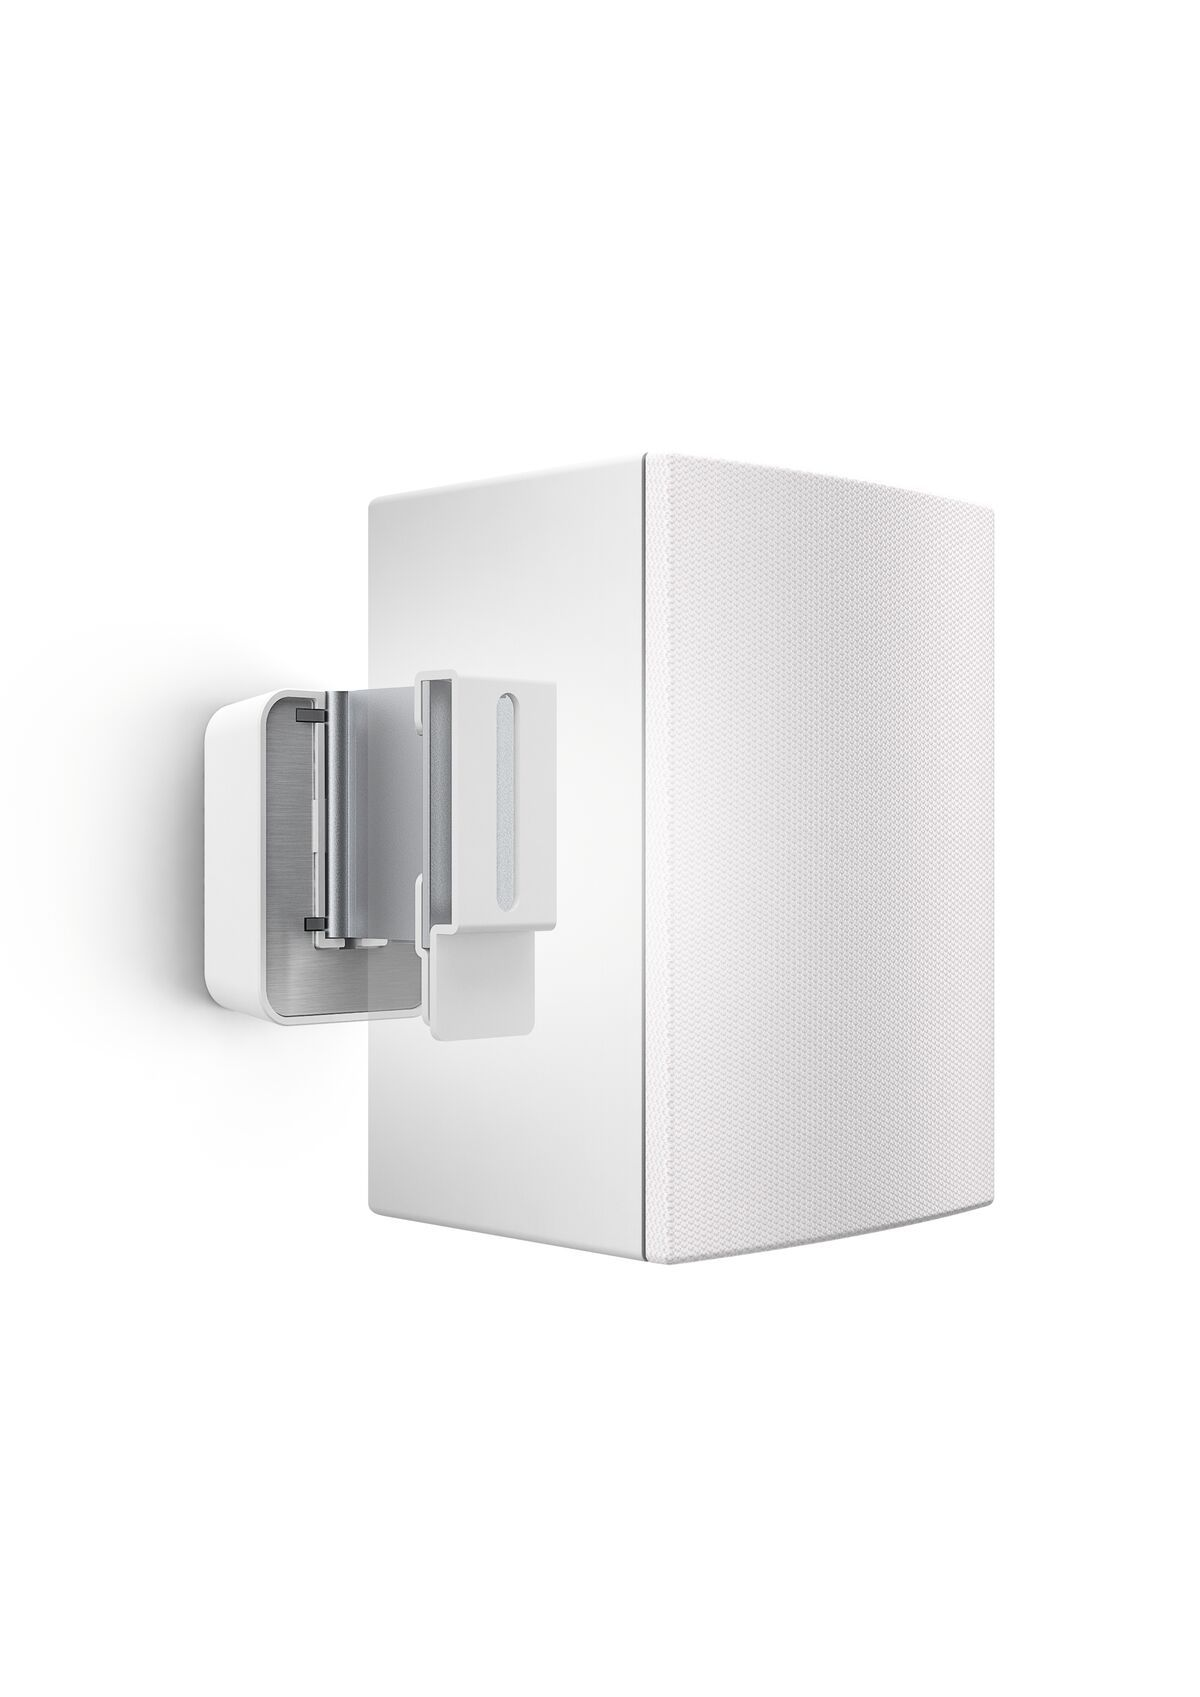 Vogel's SOUND 3200 Speaker Wall Mount (white) - Ideally suited for: Universal - Max. weight load: 5 kg - Application